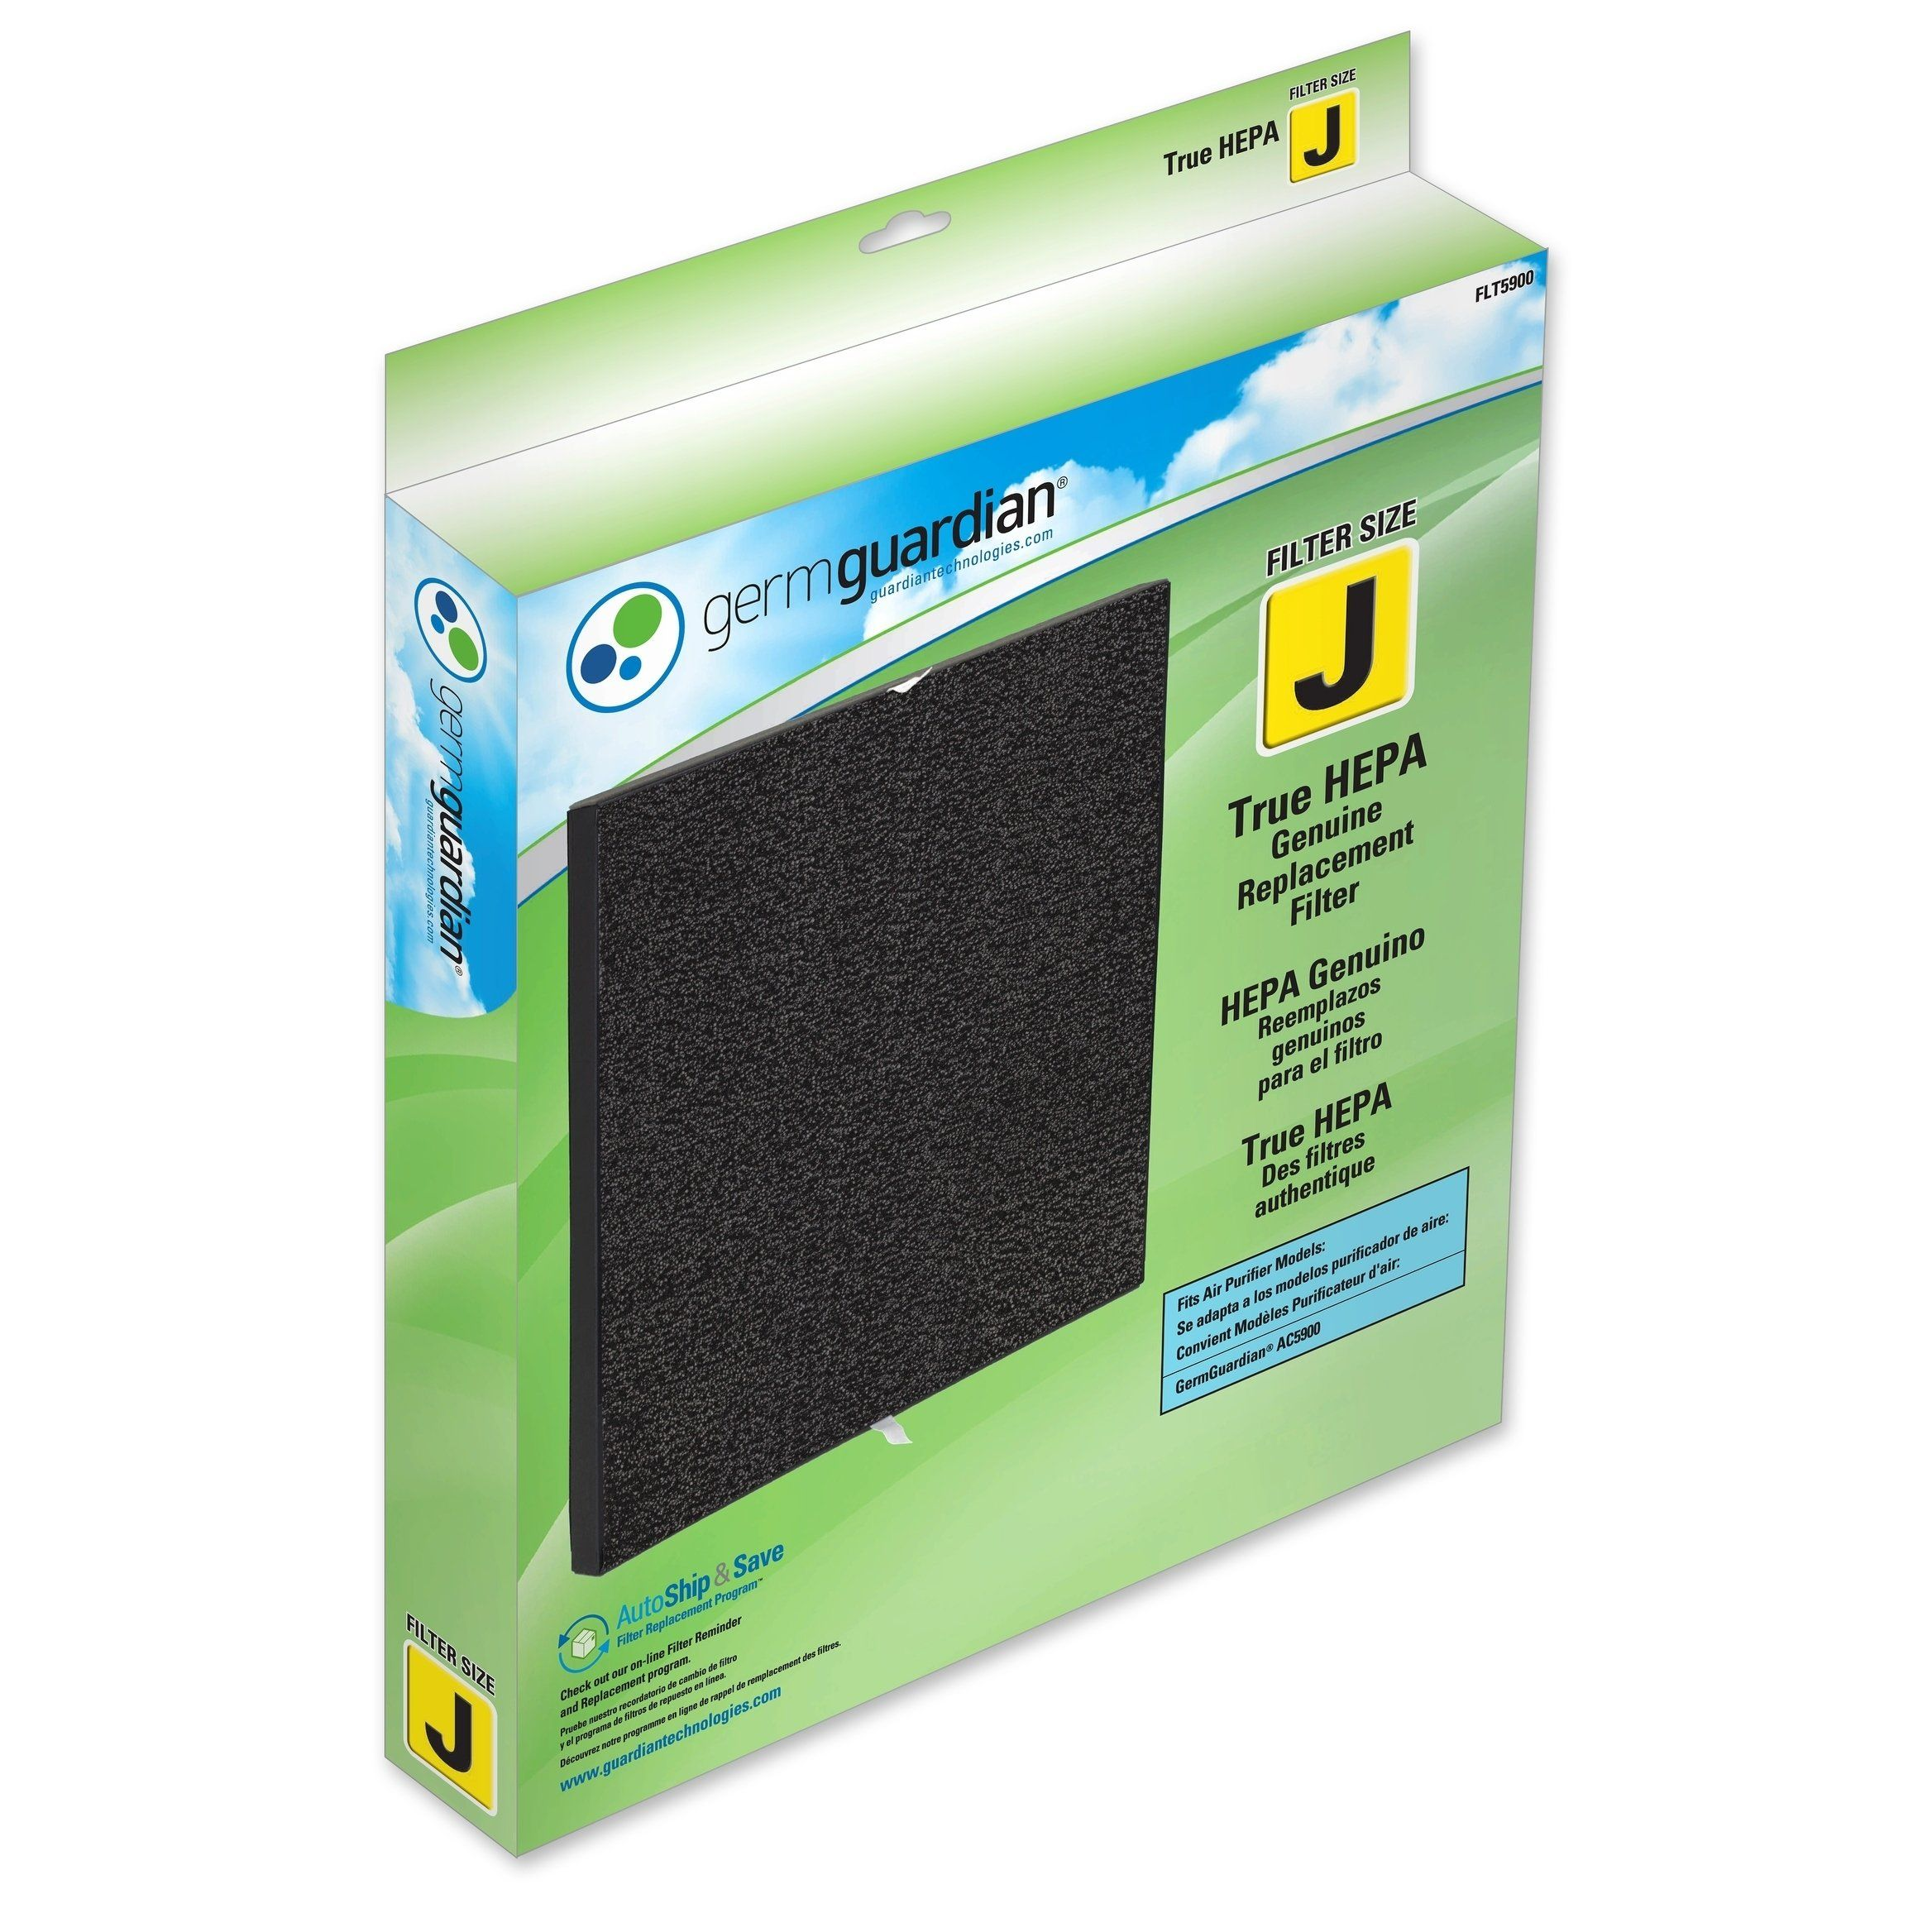 GermGuardian® FLT5900 Hepa Genuine Replacement Filter J